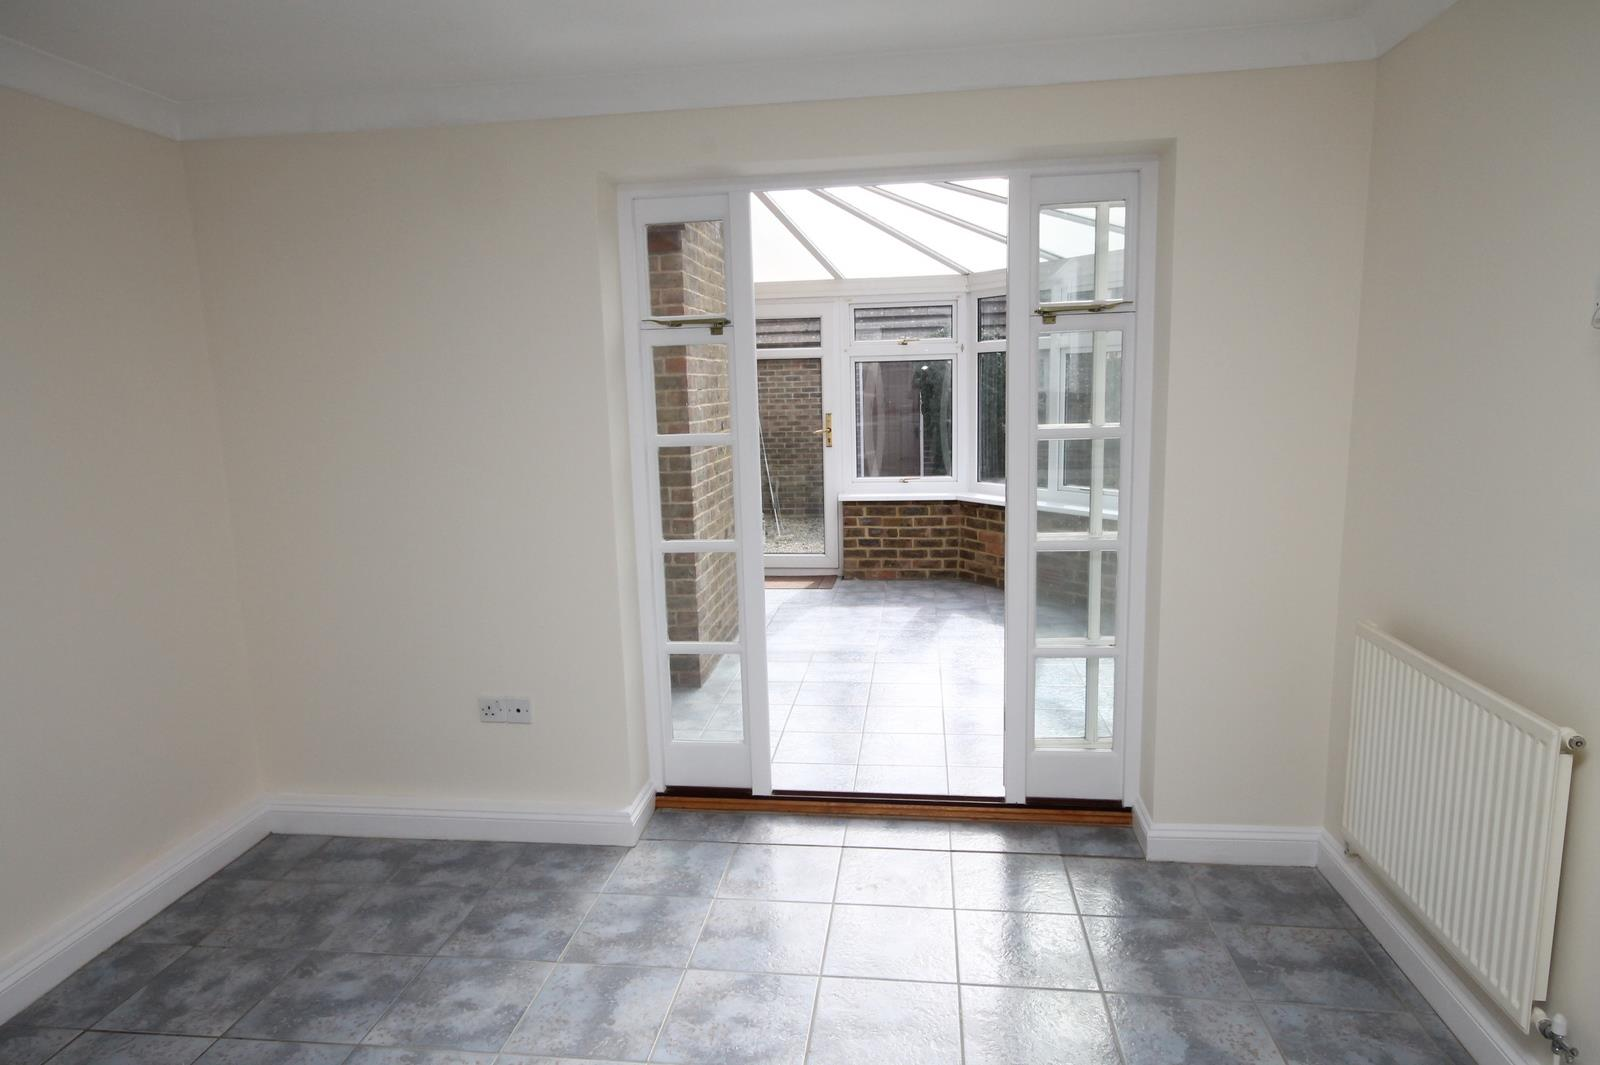 4 bed house to rent in Reedley Road, Bristol 4